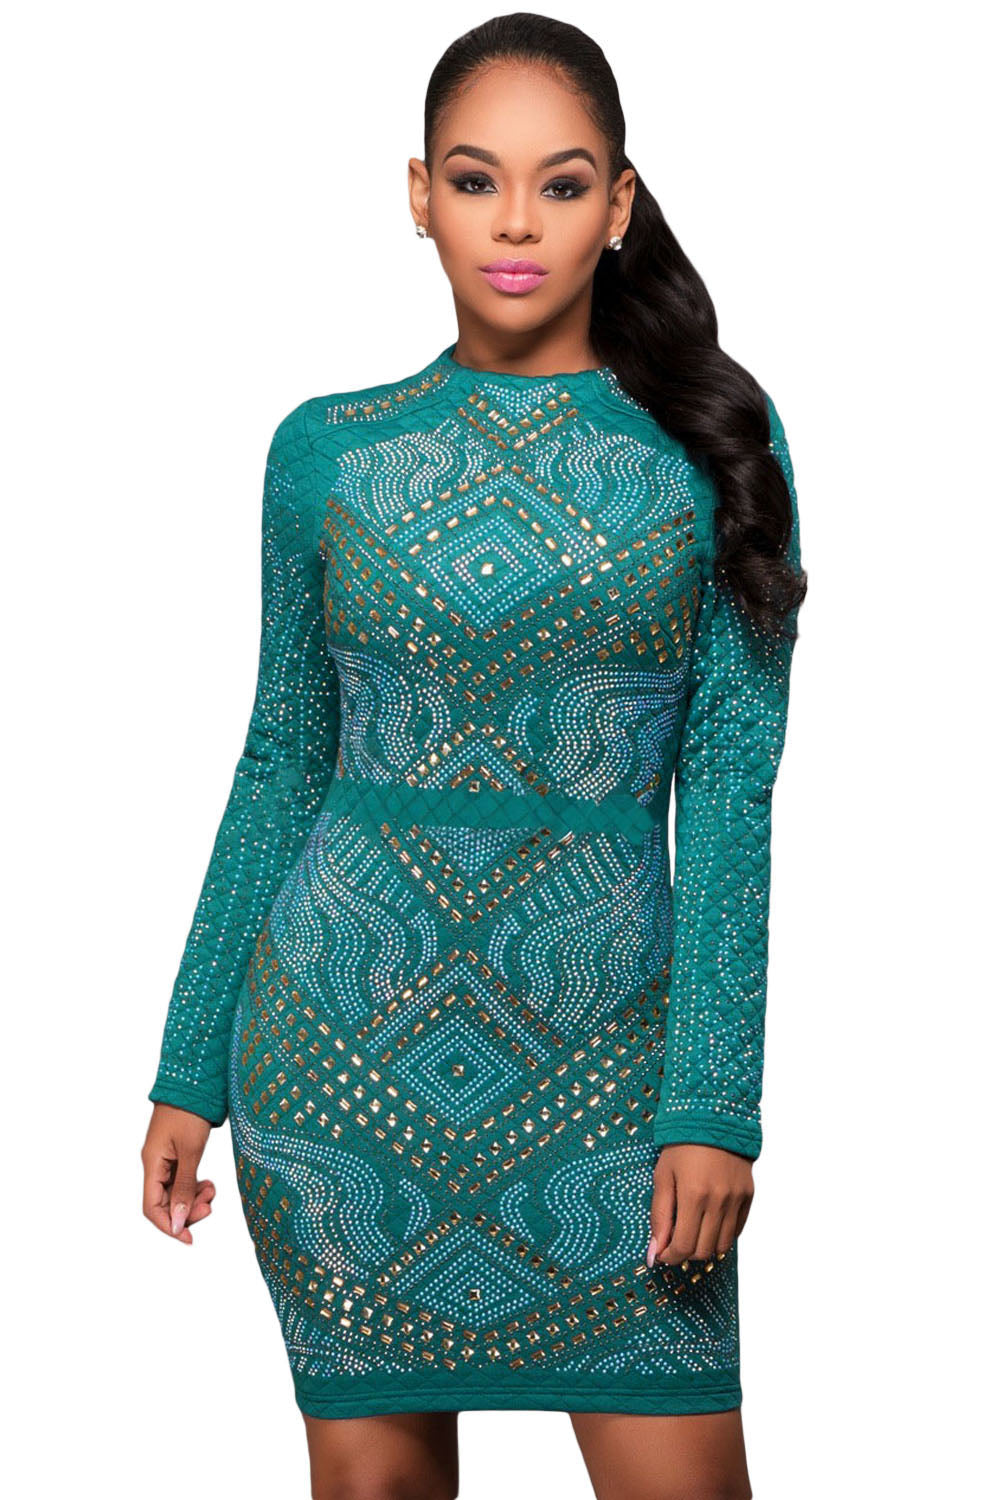 Blue Mini Jeweled Quilted Long Sleeves Dress - Online Women Mini Dress